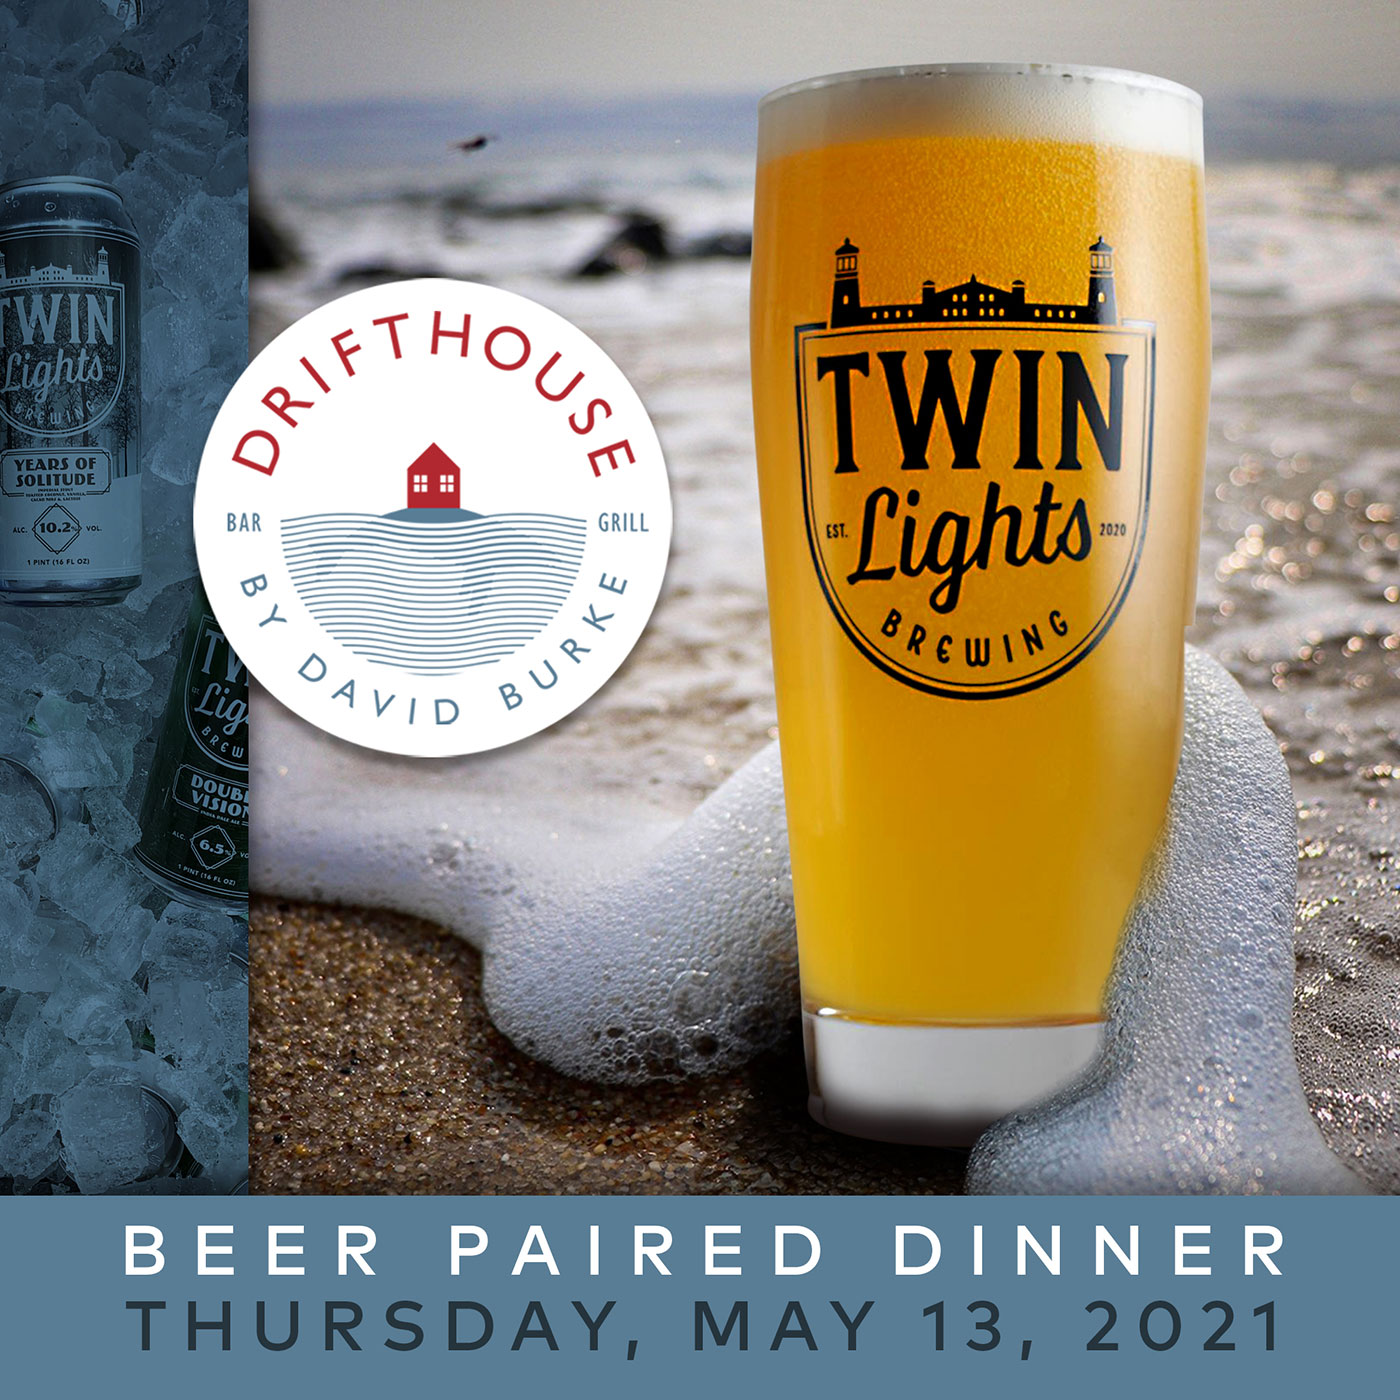 Drifthouse Twin Lights Beer Paired Dinner